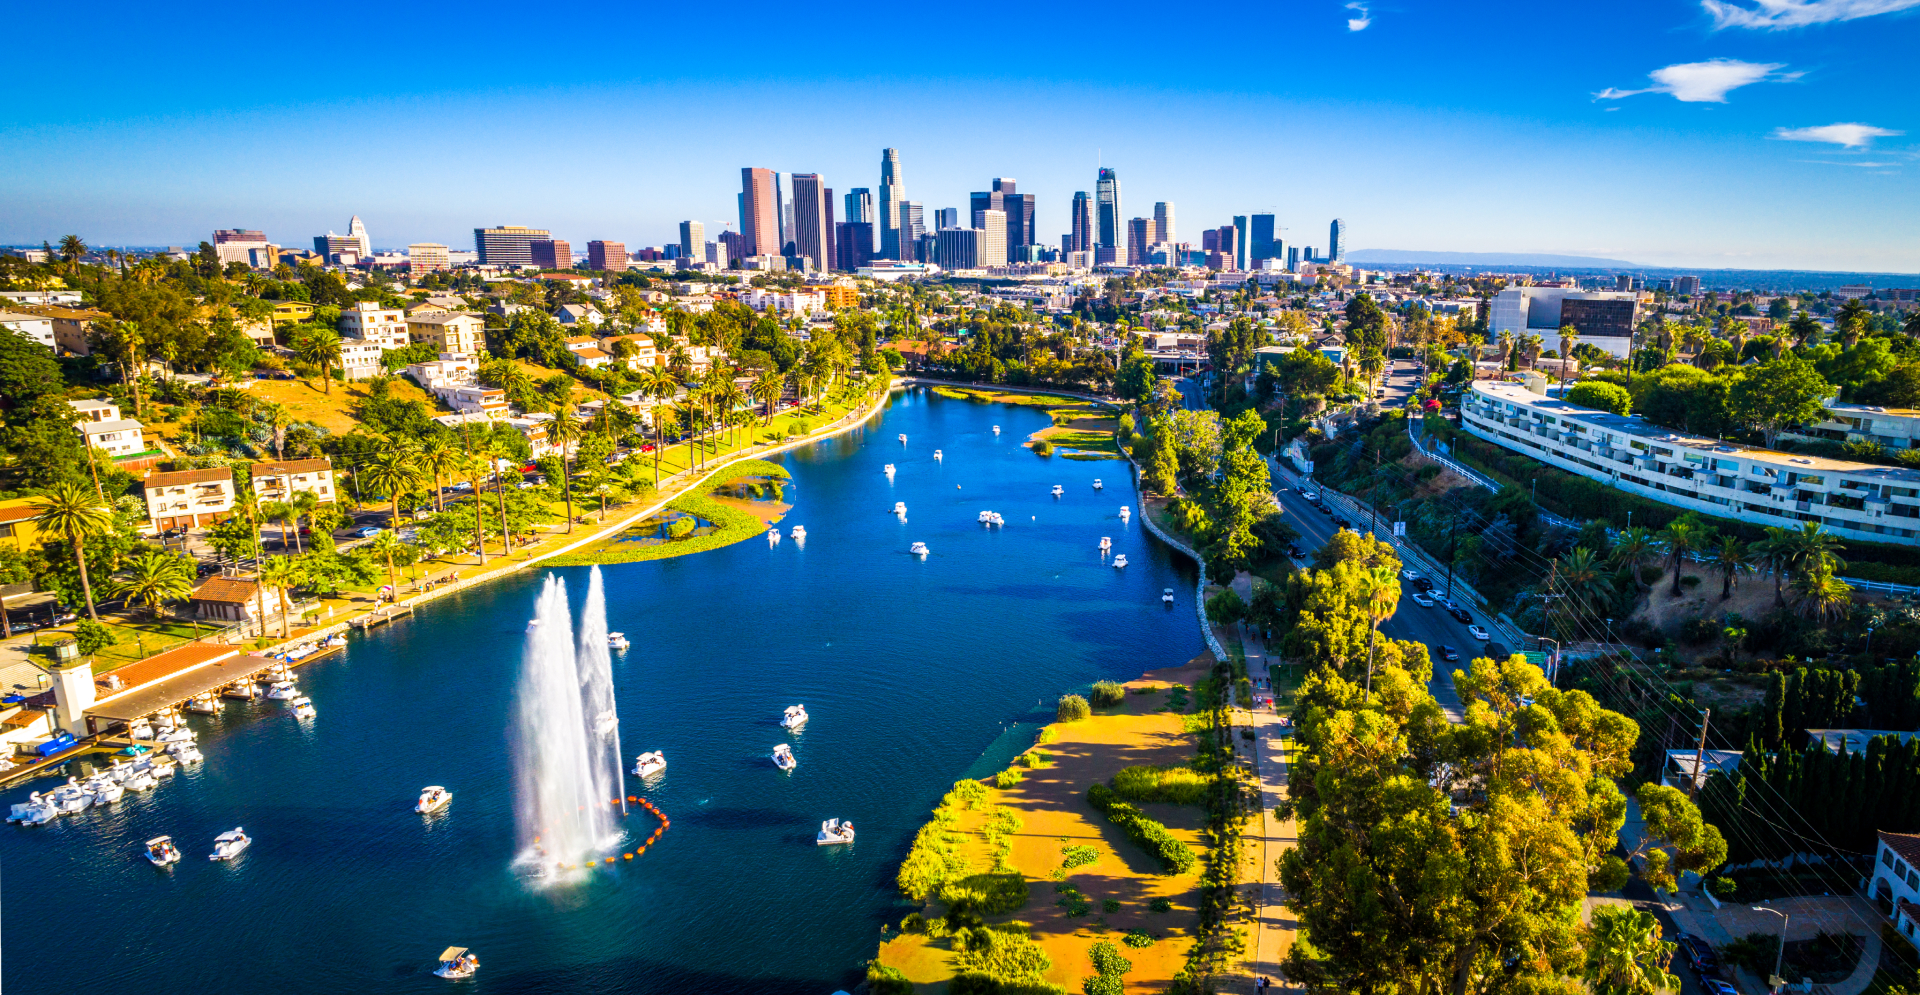 LA Metro selects Arcadis to provide environmental services, construction support